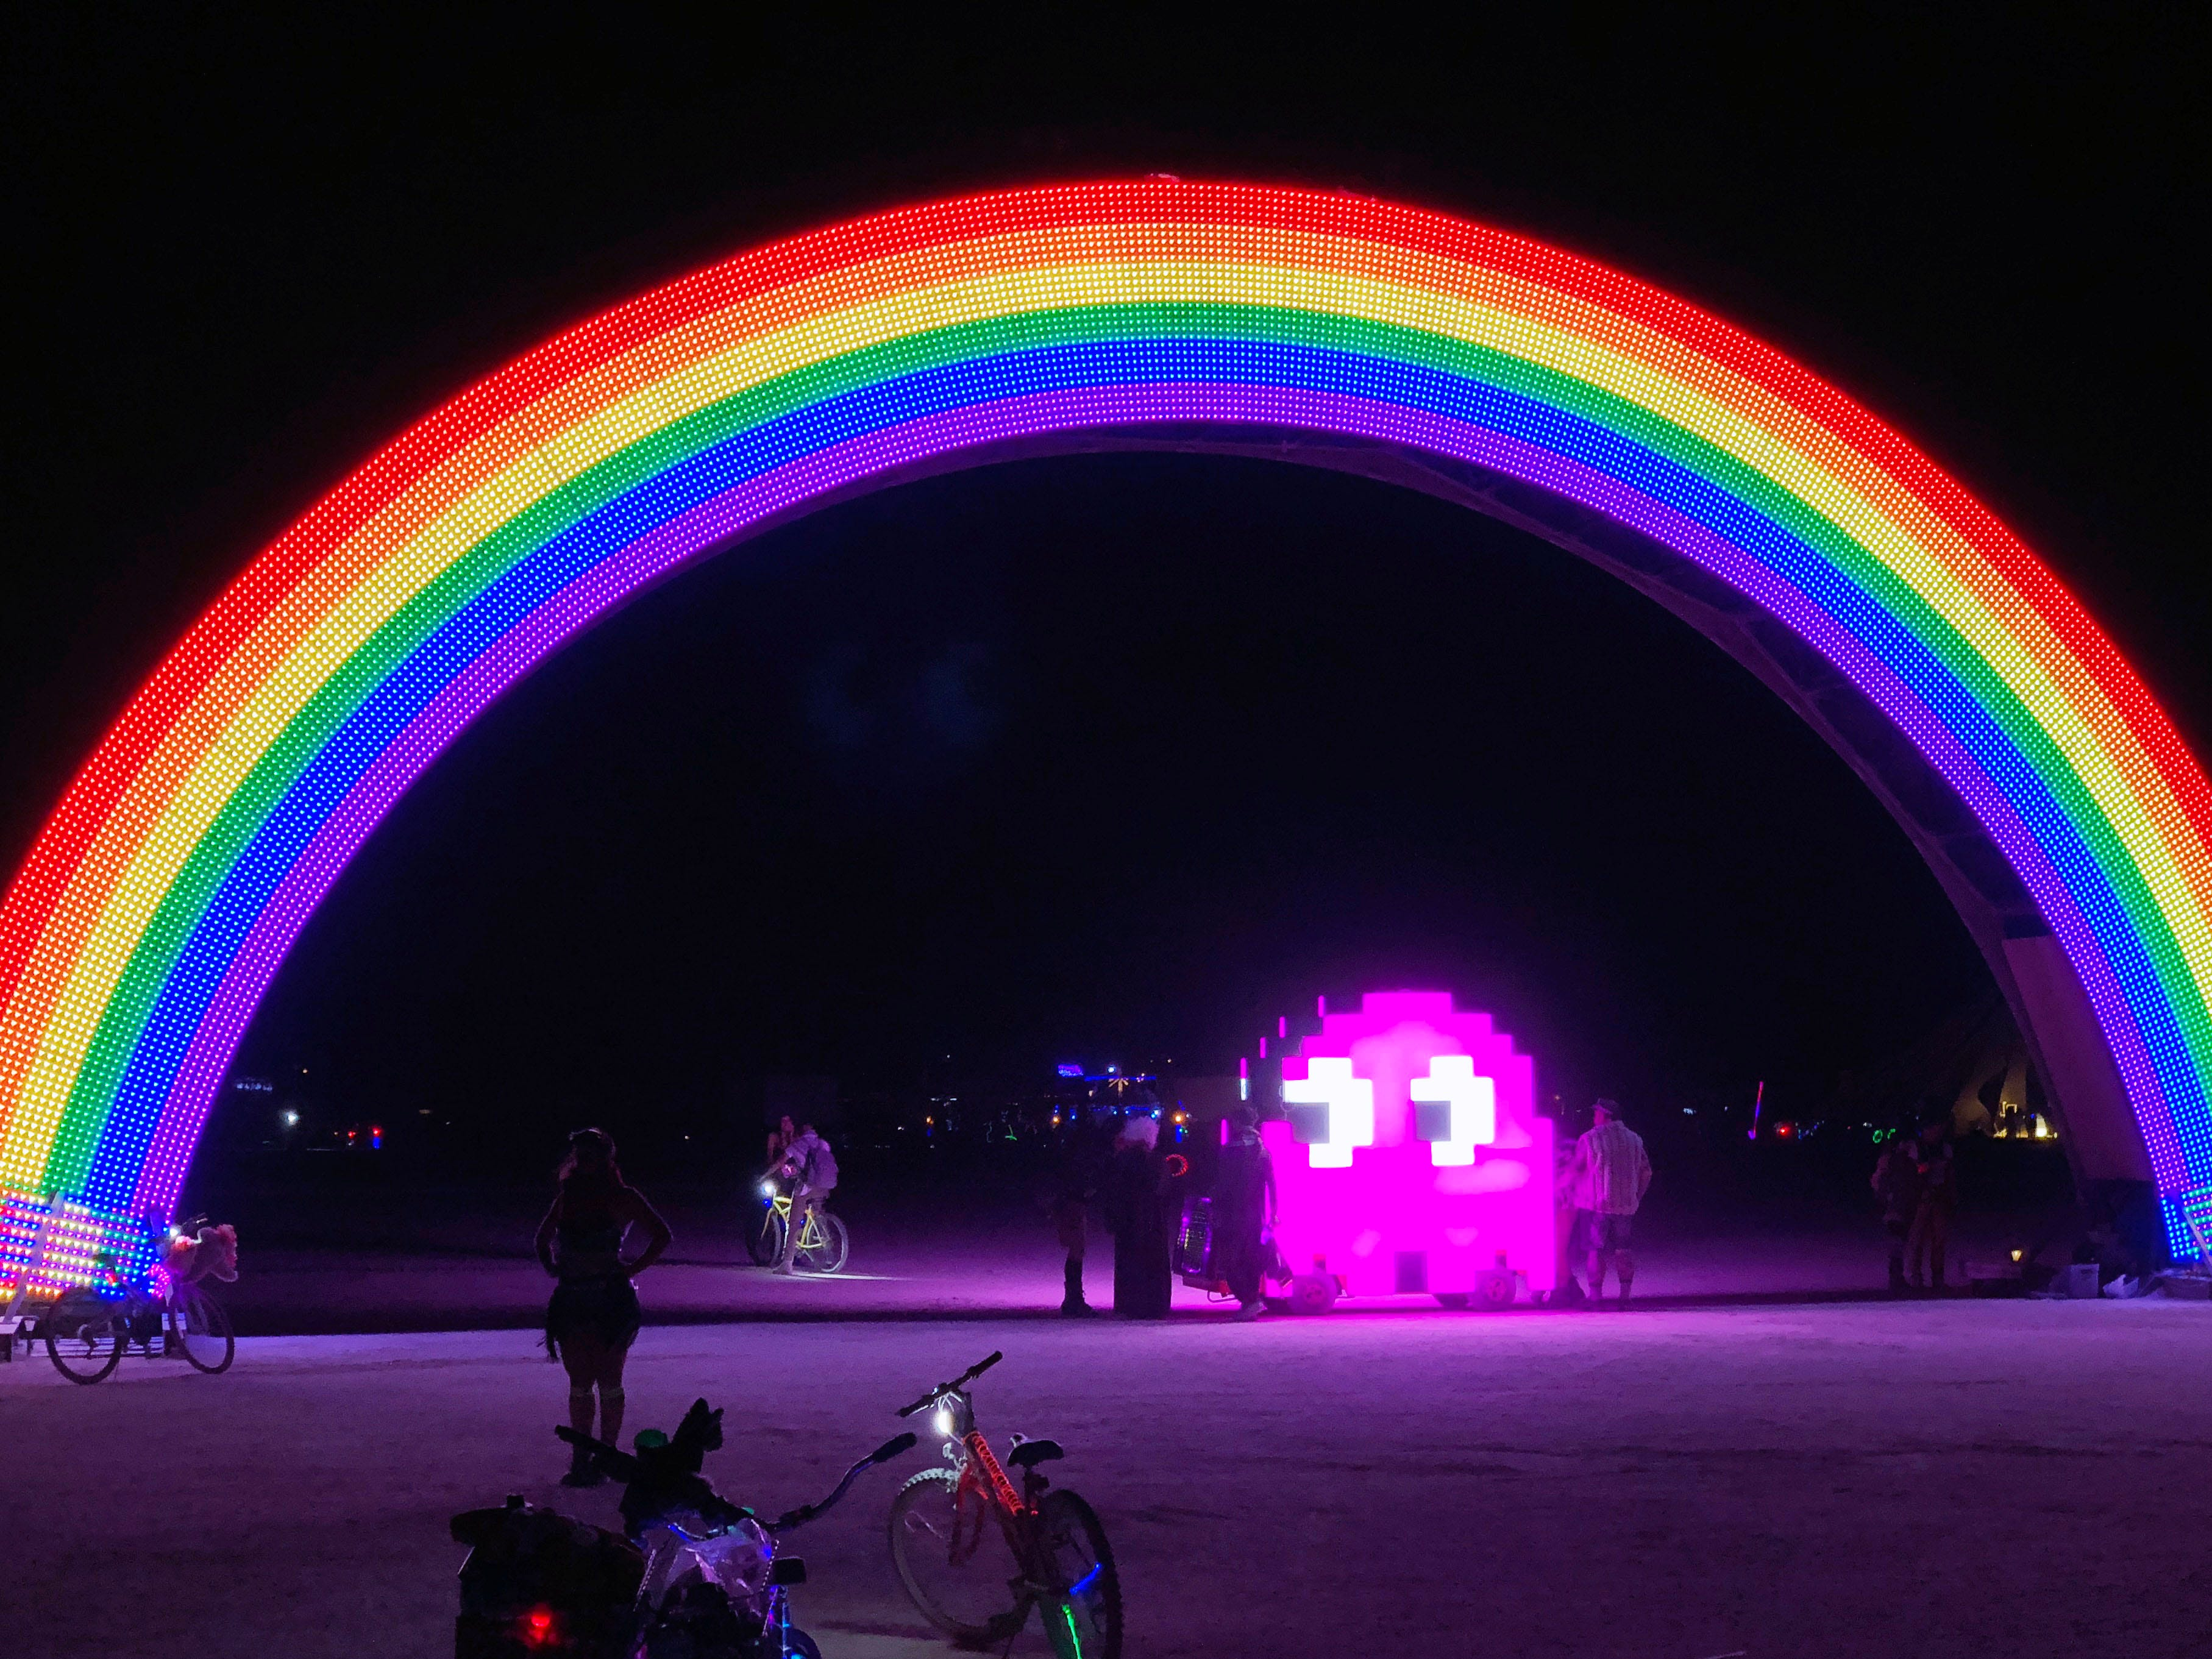 A ghost from PAC-MAN cruises beneath an illuminated rainbow bridge at Burning Man.